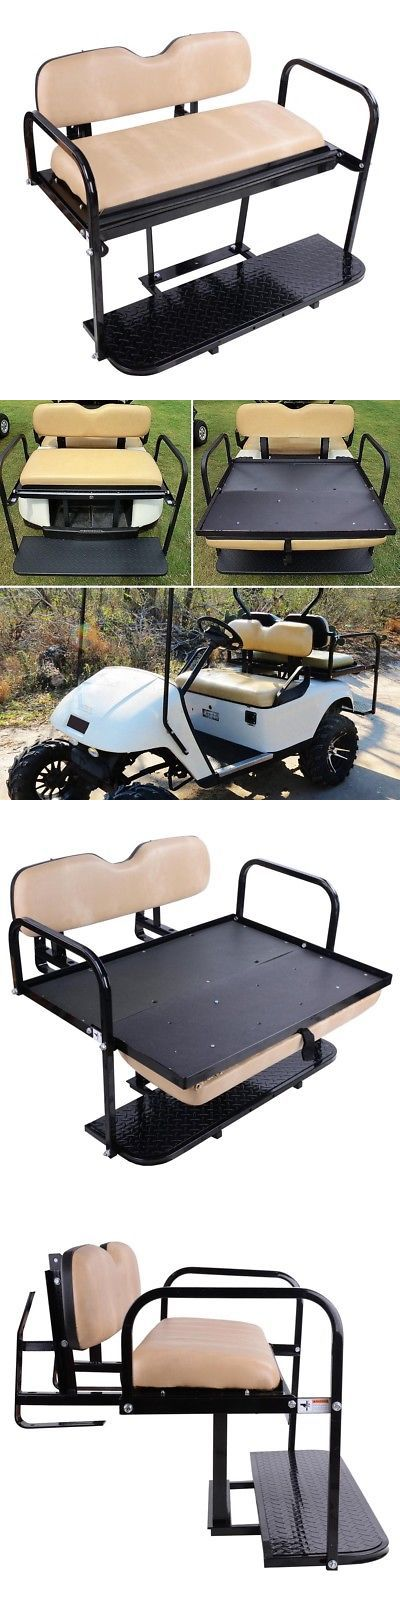 Push-Pull Golf Cart Parts 181154: Ezgo Txt (1995-2014) Golf Cart Classic Rear Flip Back Seat Kit Cargo Bed -> BUY IT NOW ONLY: $293.9 on eBay!